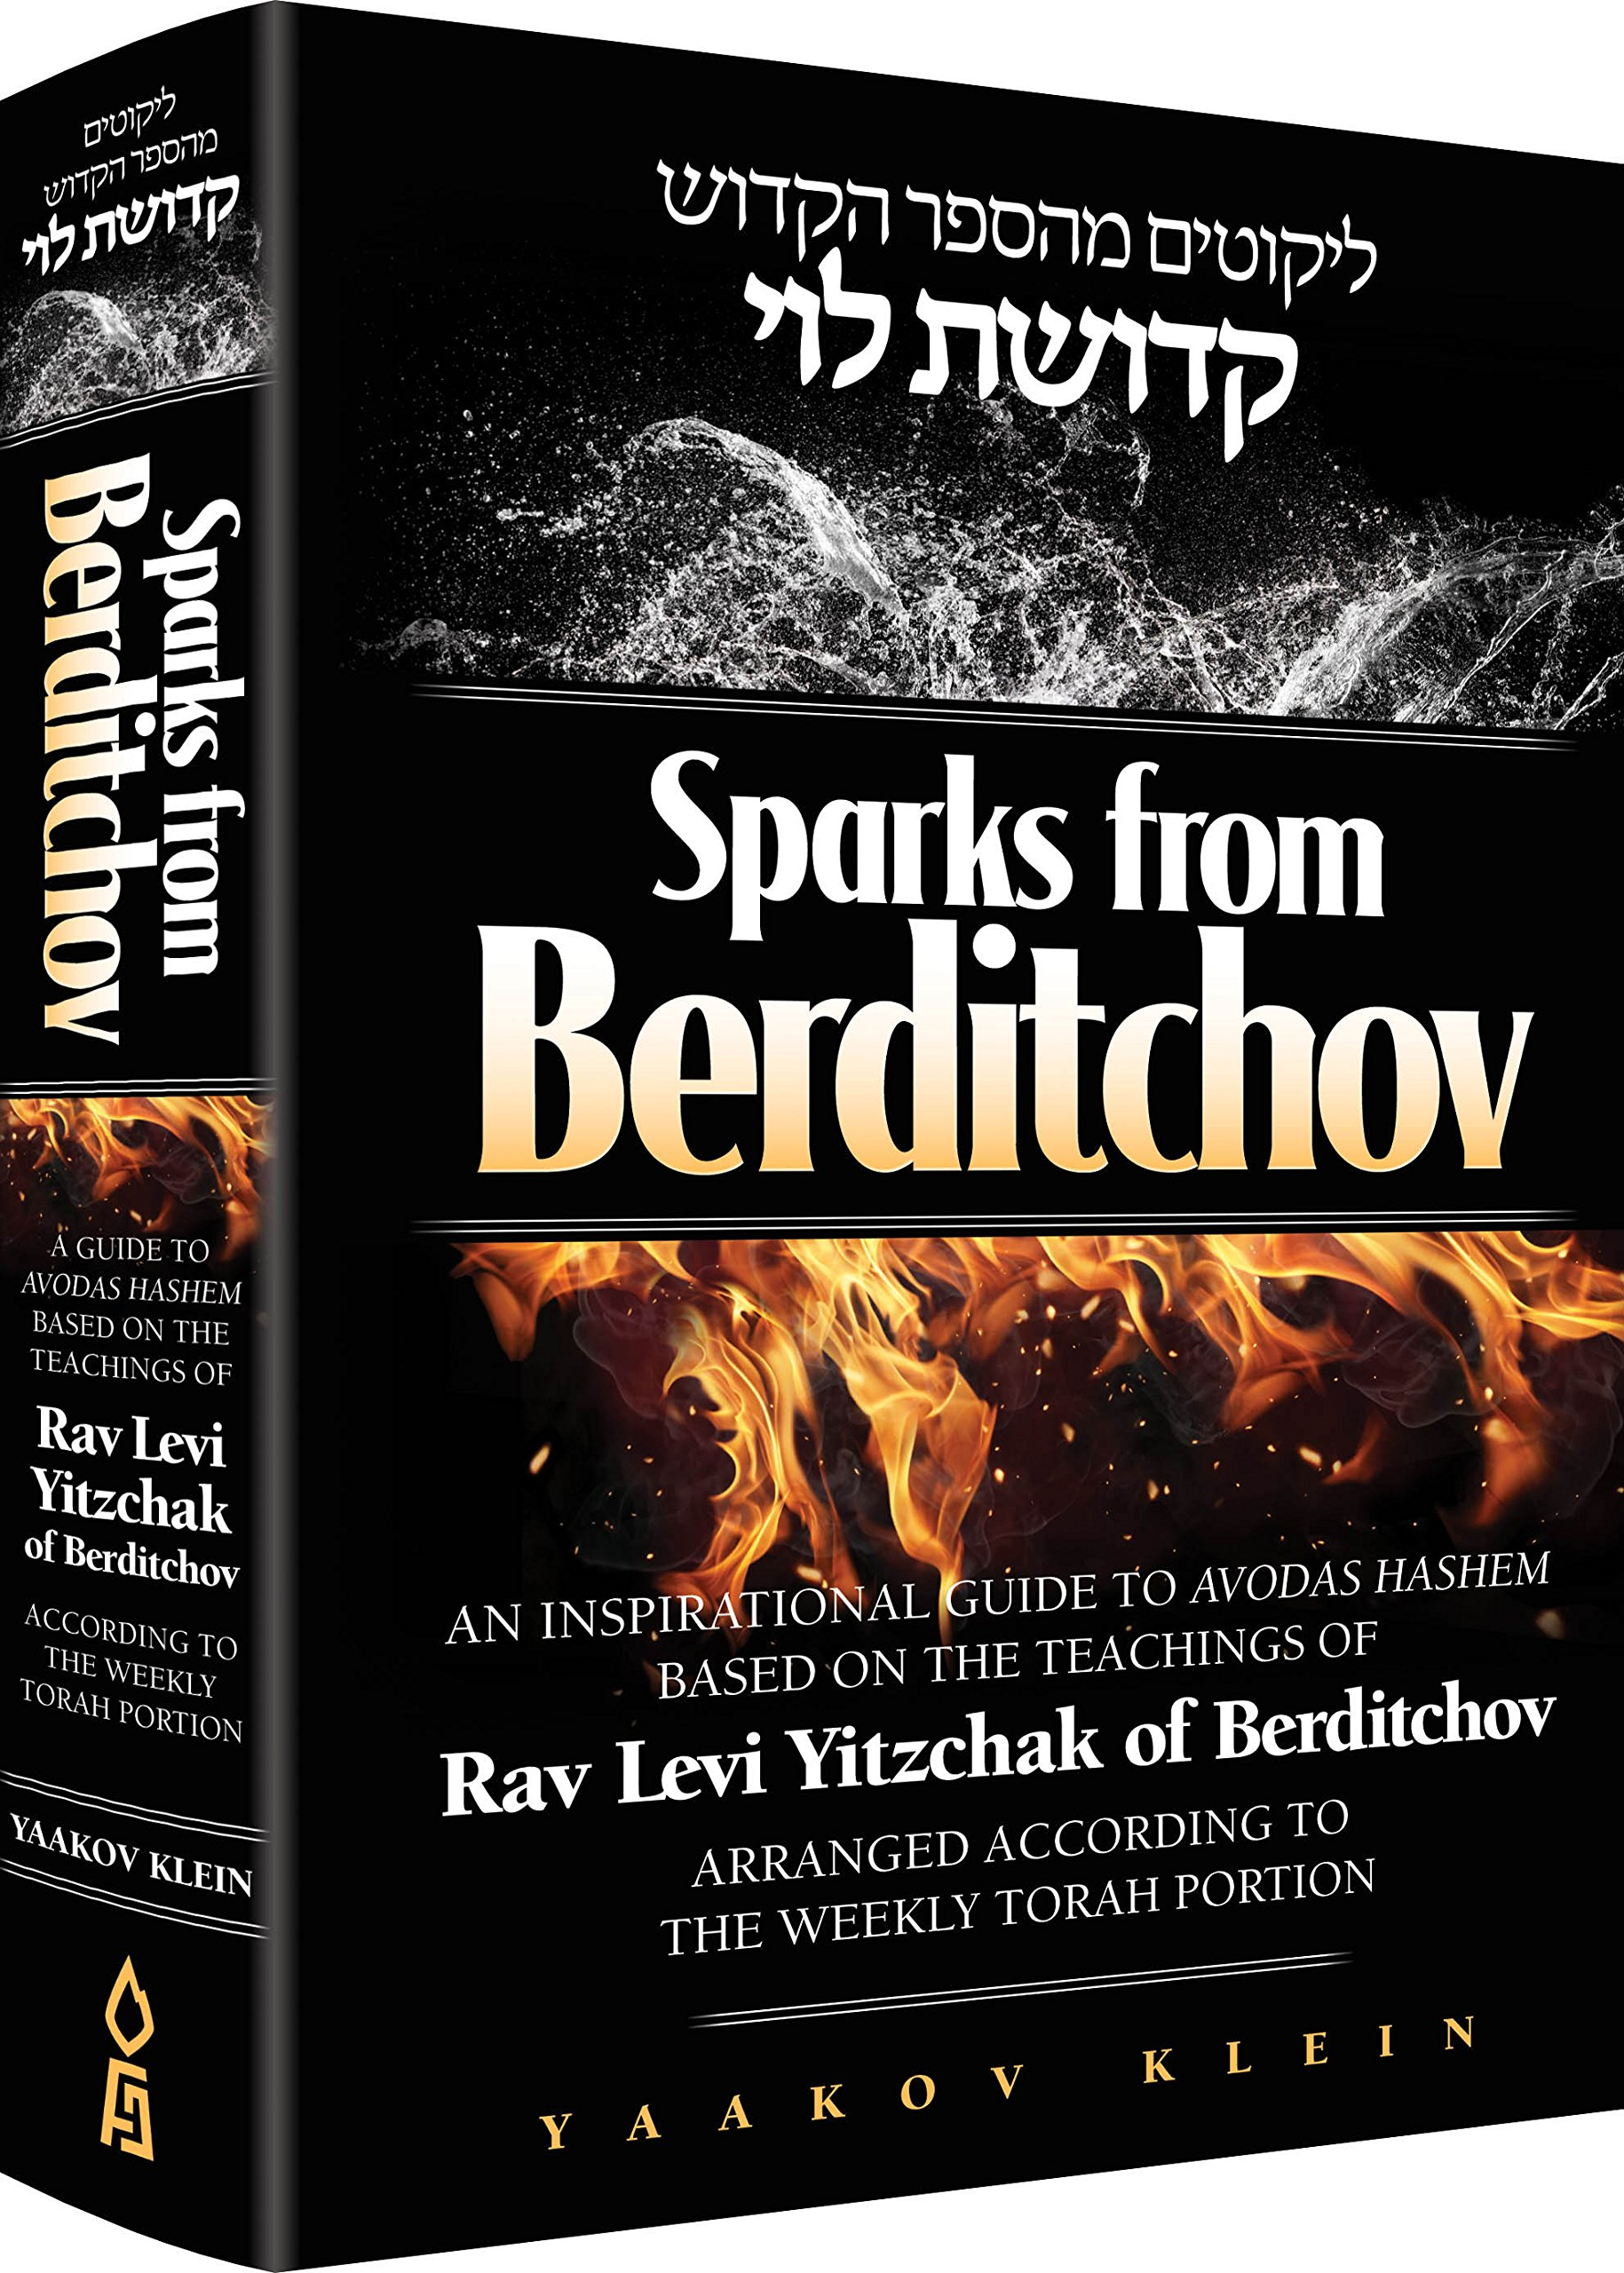 Sparks from Berditchov: An Inspirational Guide to Avodas Hashem Based On the Teachings of Rav Levi Yitzchak of Berditchov by Yaakov Klein